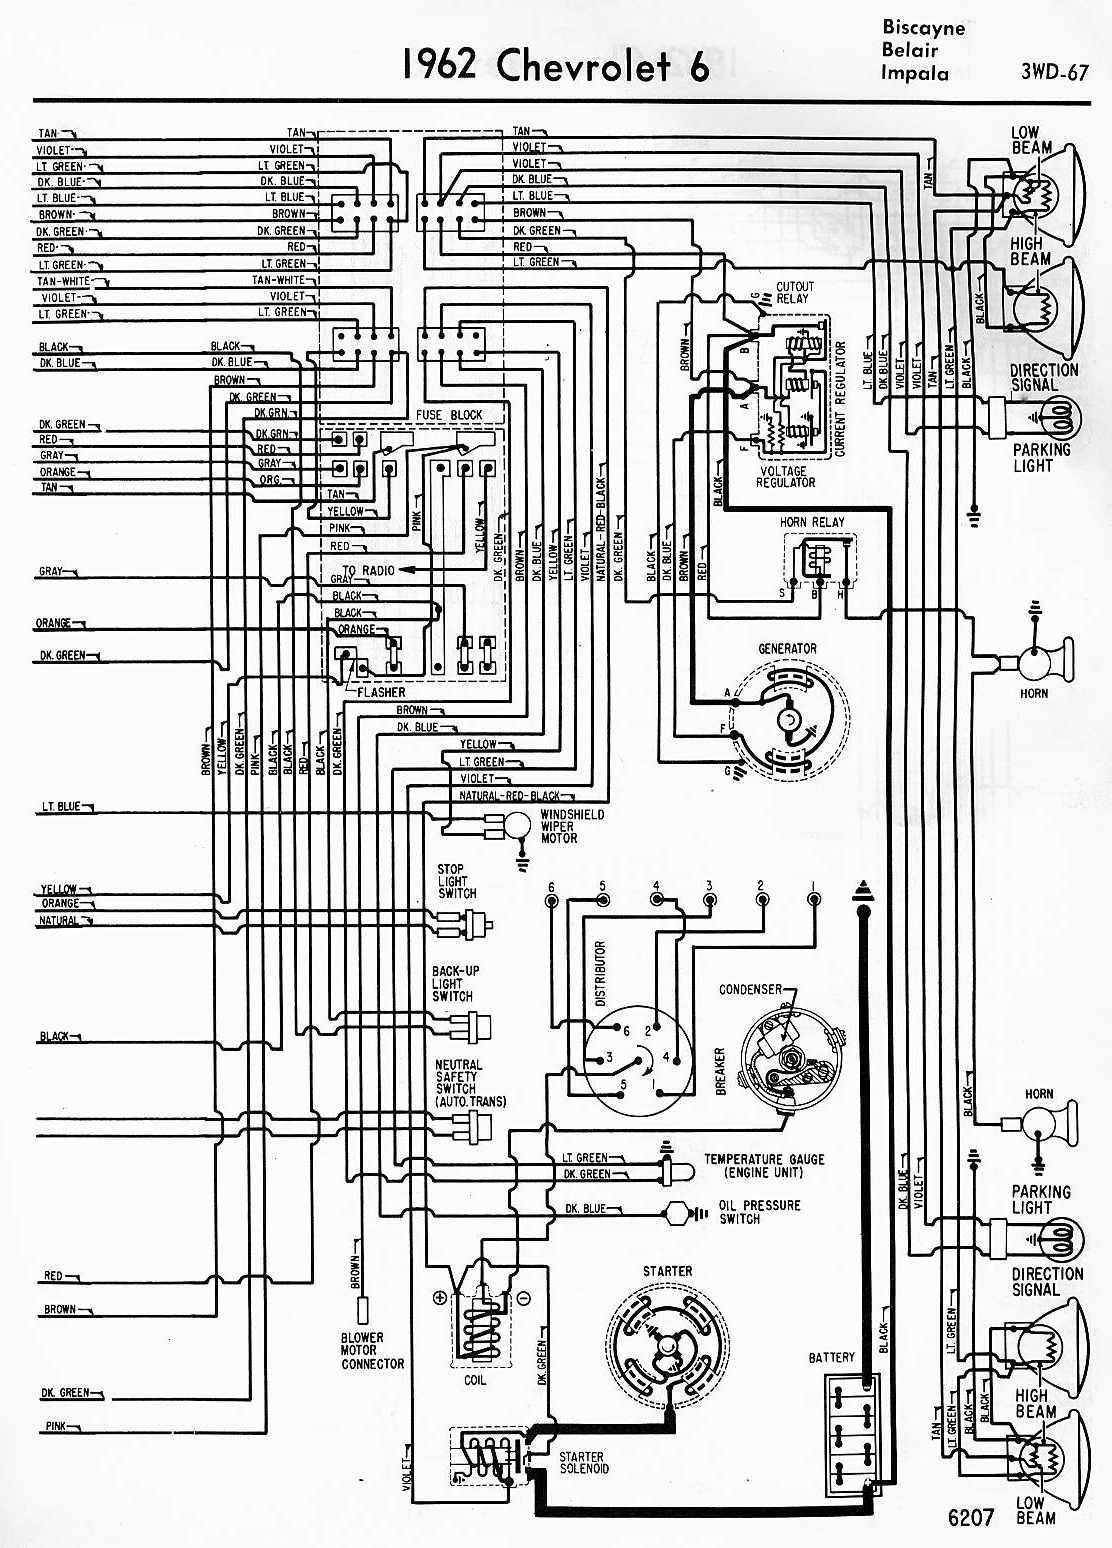 Electrical Wiring Diagram Of 1962 Chevrolet 6 | All about Wiring Diagrams